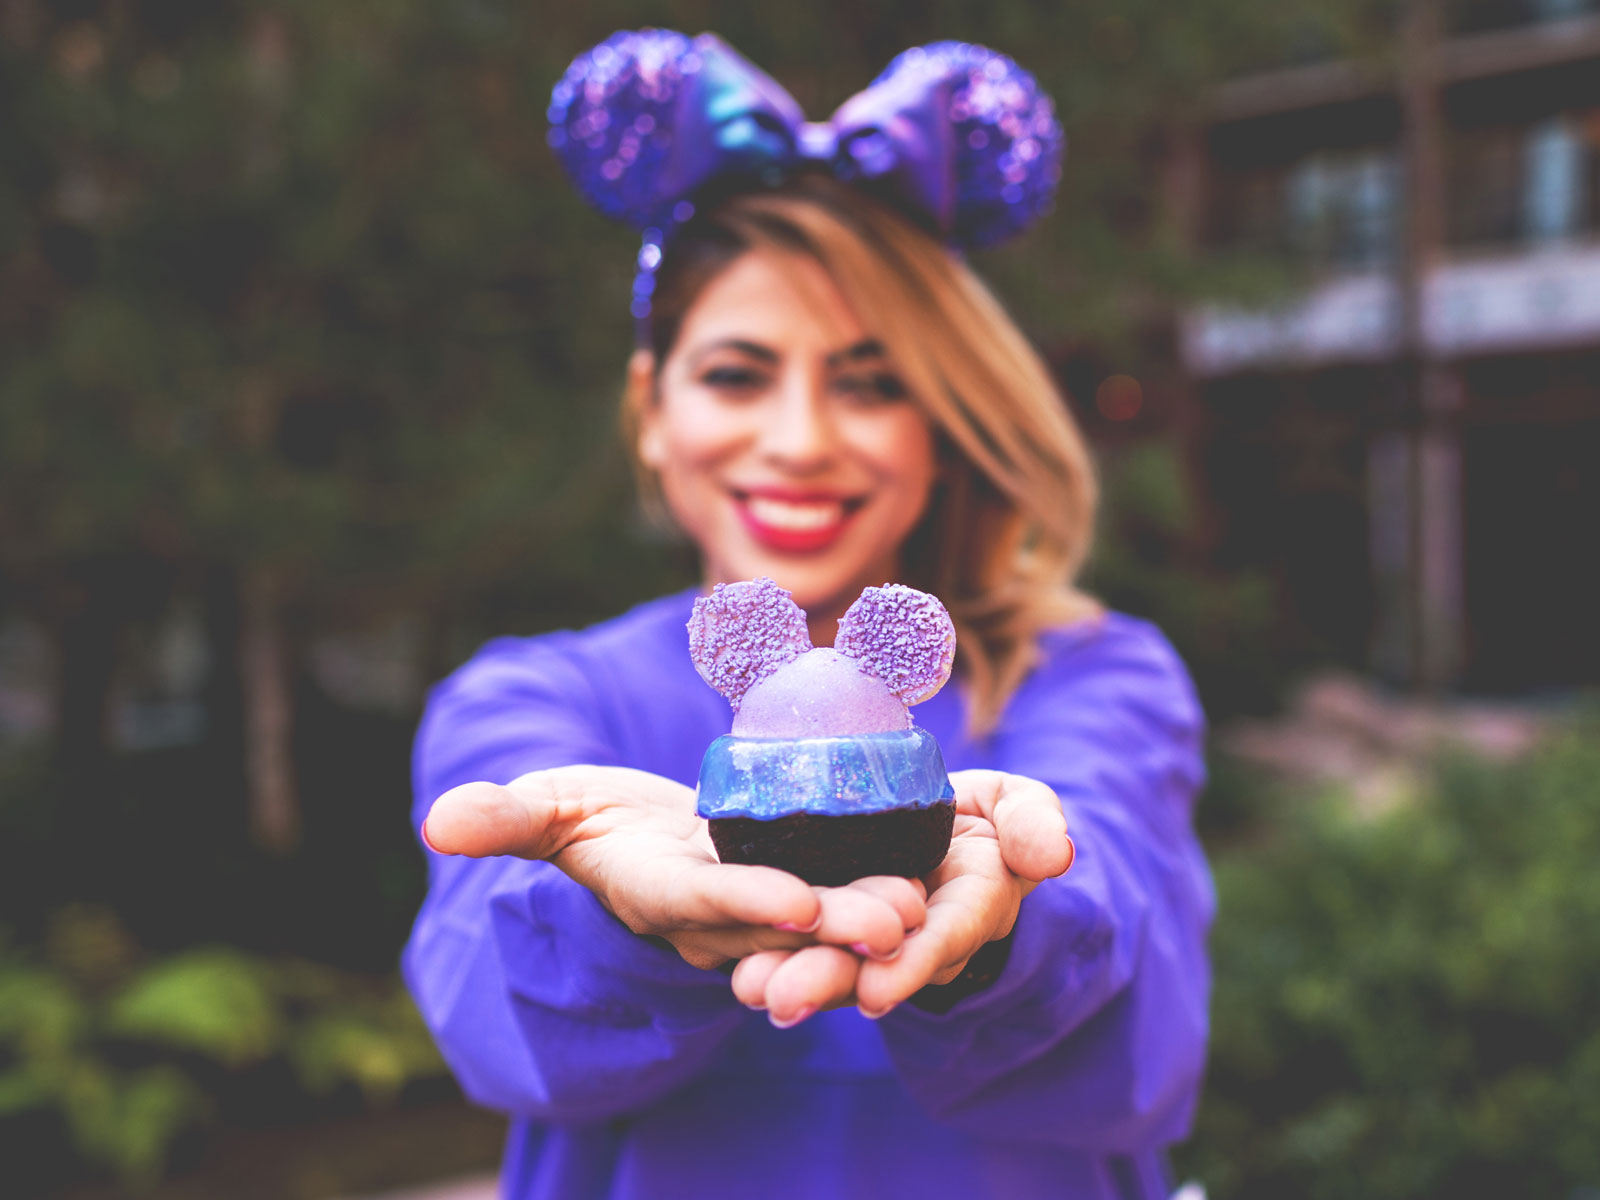 Purple Treats Pop Up at Disney Parks in 2019